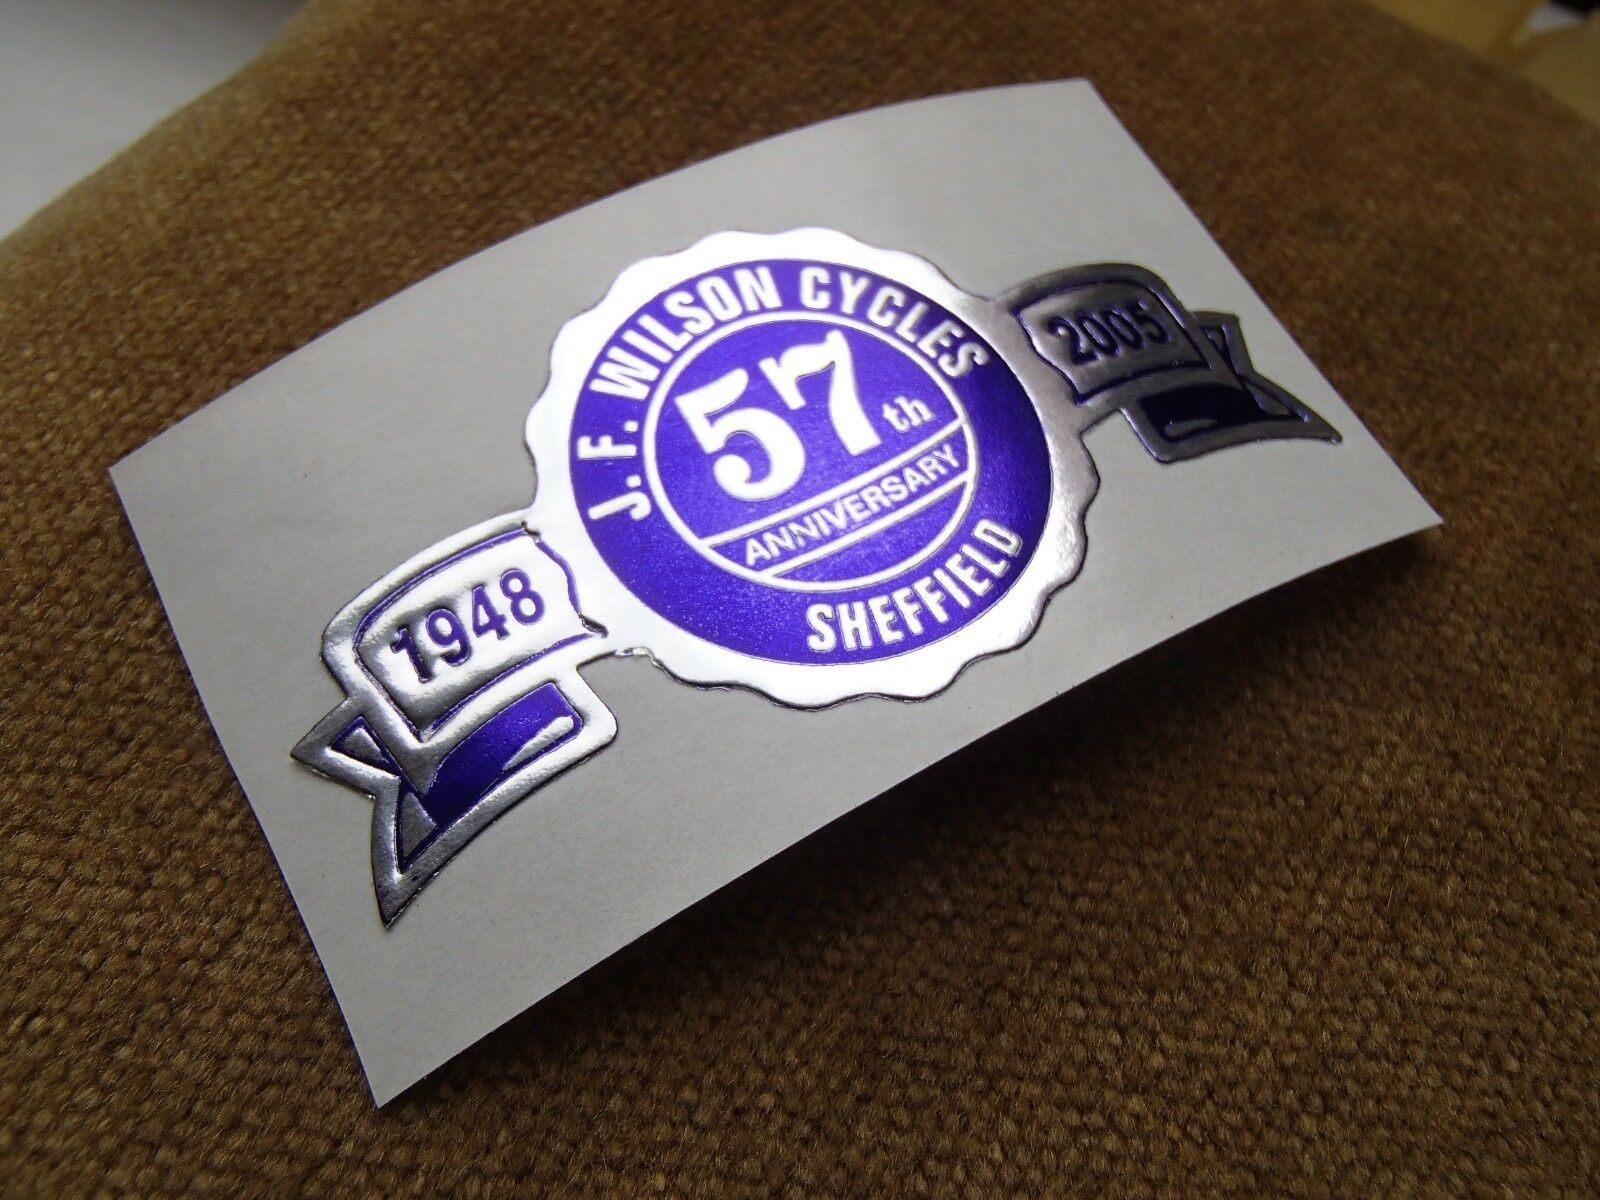 J.F. Wilson cycles frame 57th Anniversaire Autocollant original bleu/argent cycle frame cycles badge 776cc6